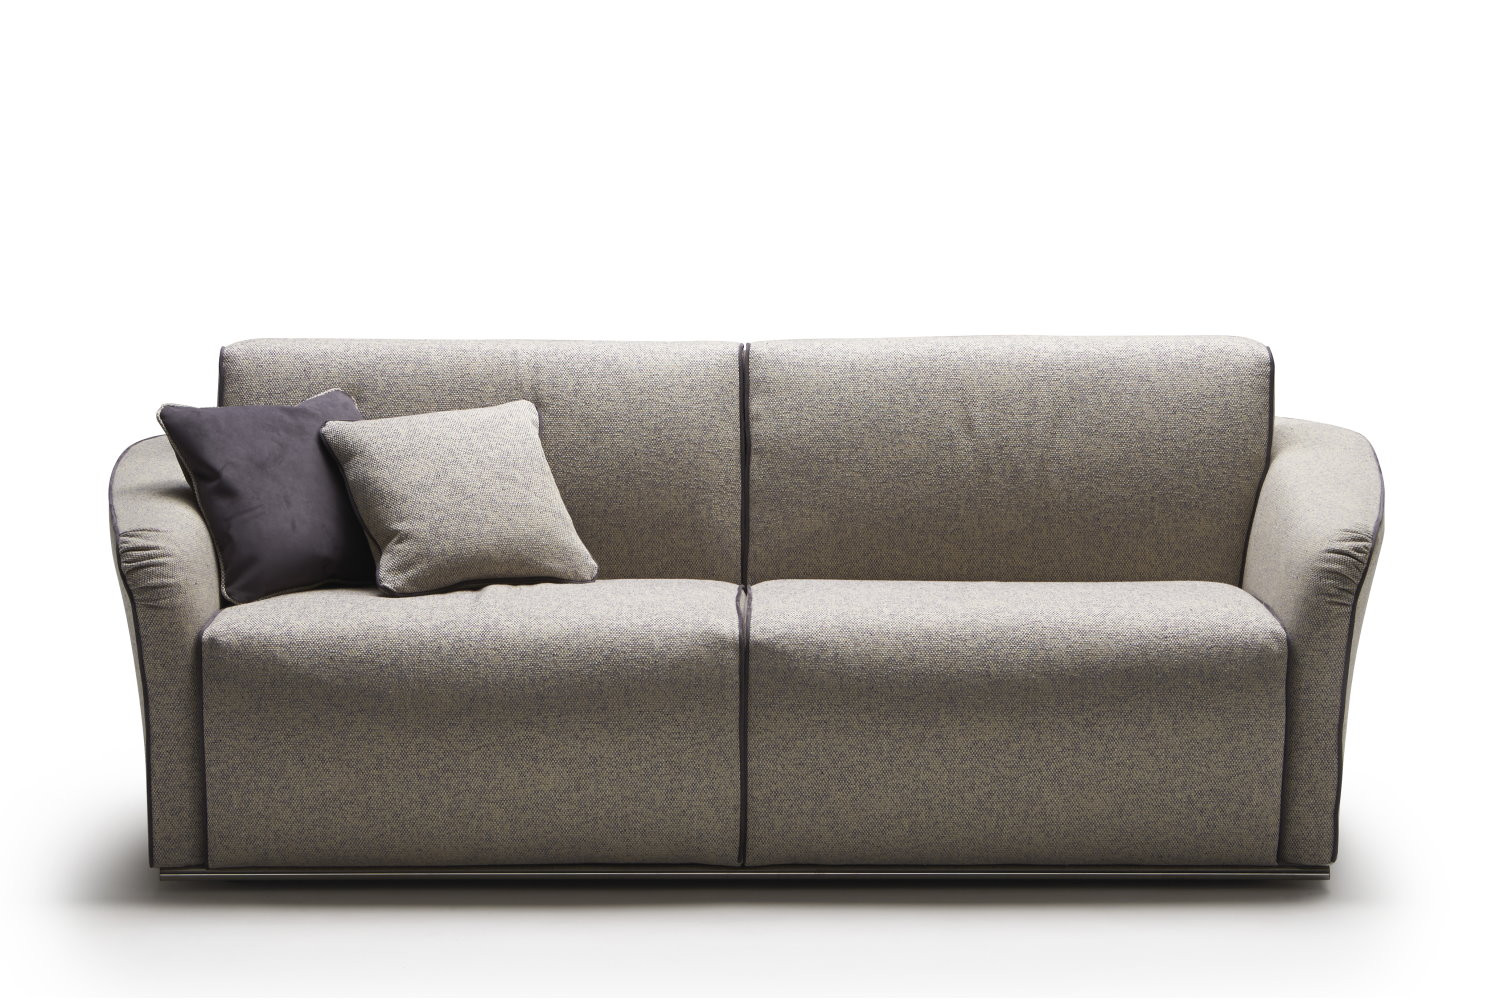 Groove Everyday Sofa Bed With Storage Backrest